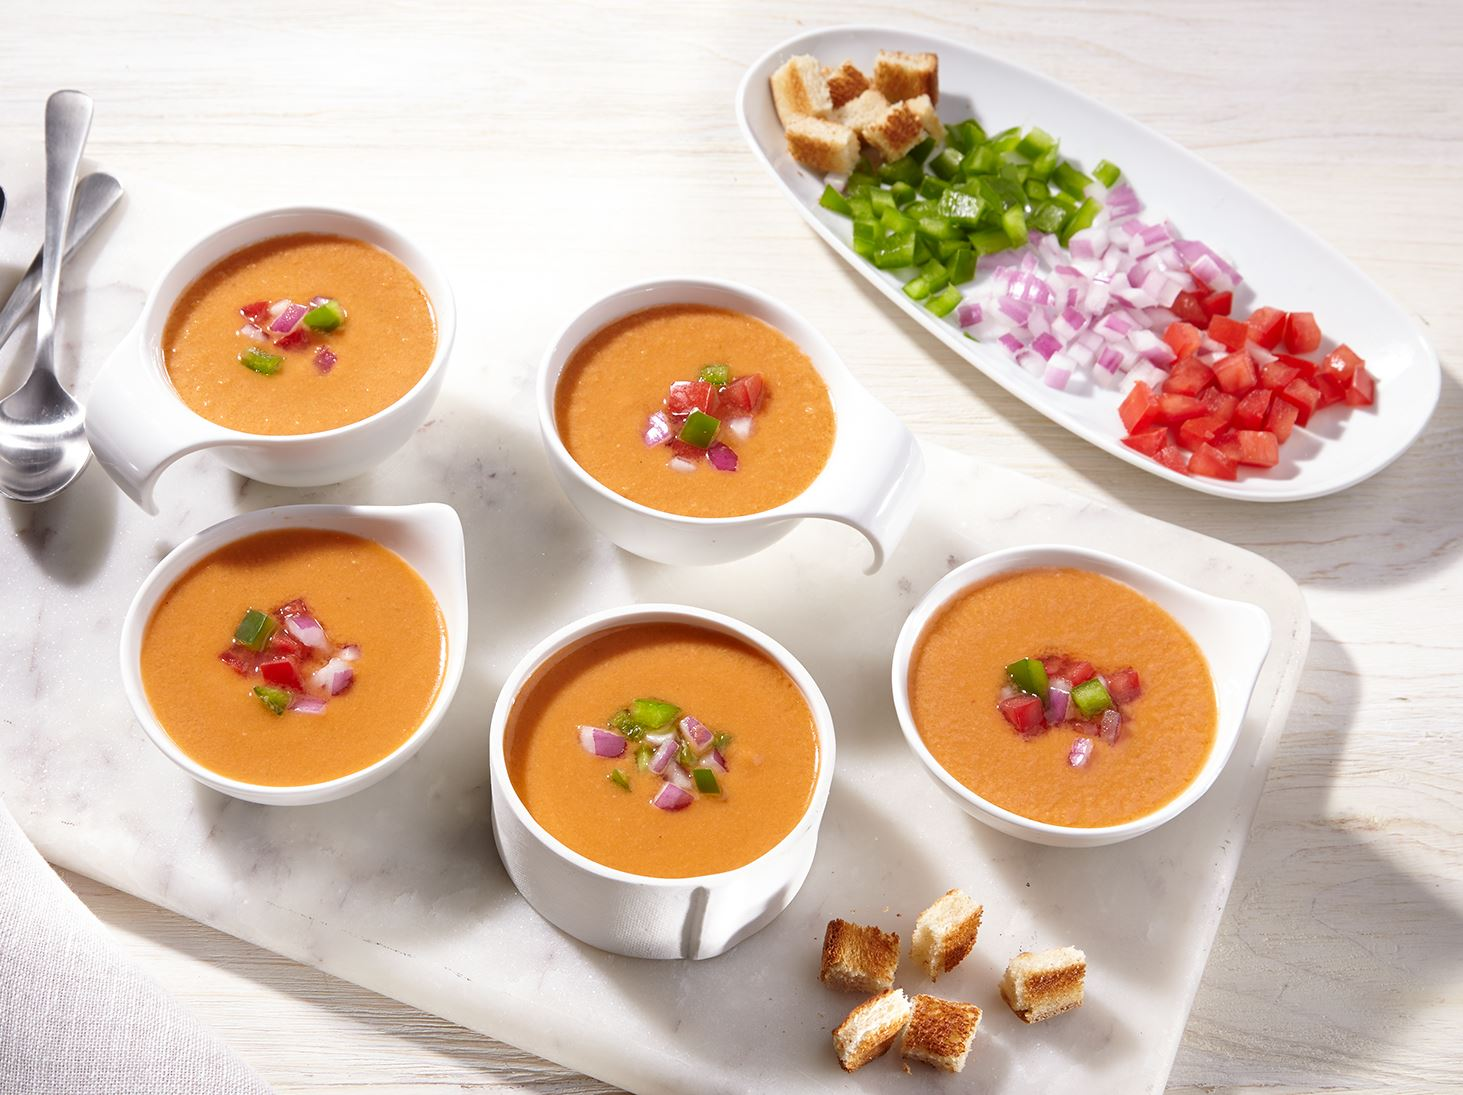 Gazpacho - Cold Vegetable Soup